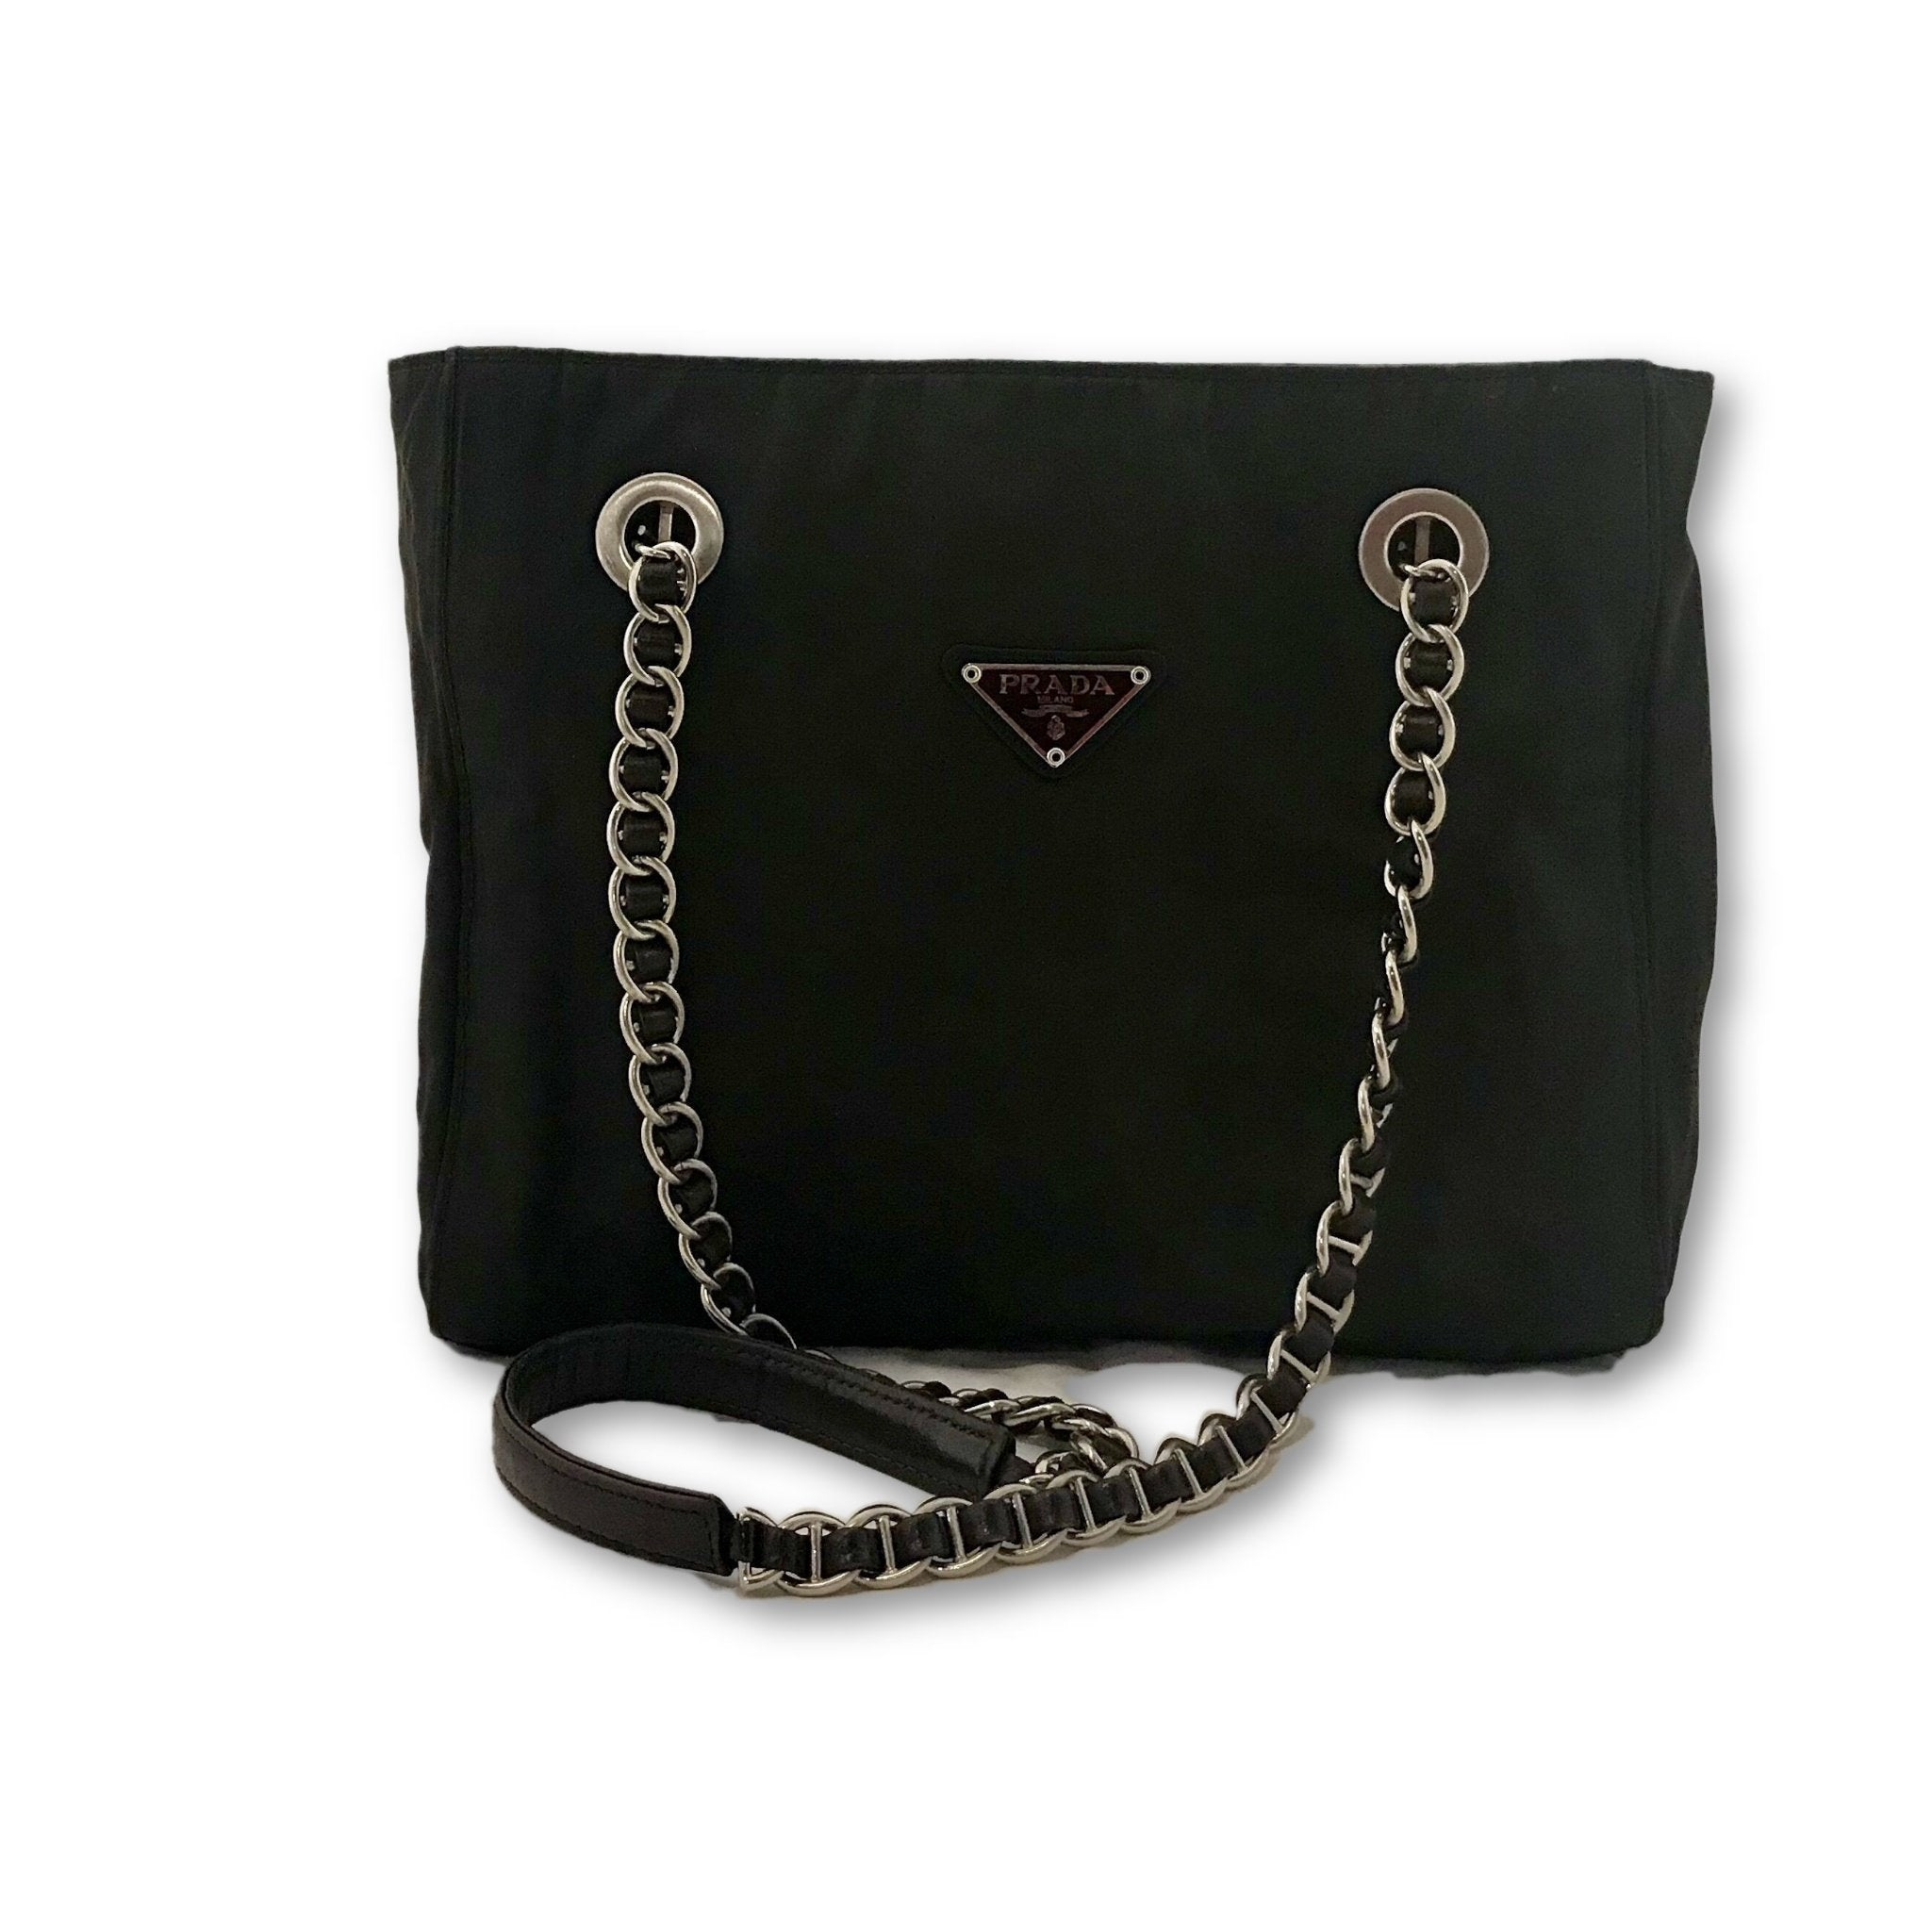 5fd952d9cadc2c Authenticity Guaranteed - Prada Tessuto Bag with Chain Straps – Authentic  Bags Only